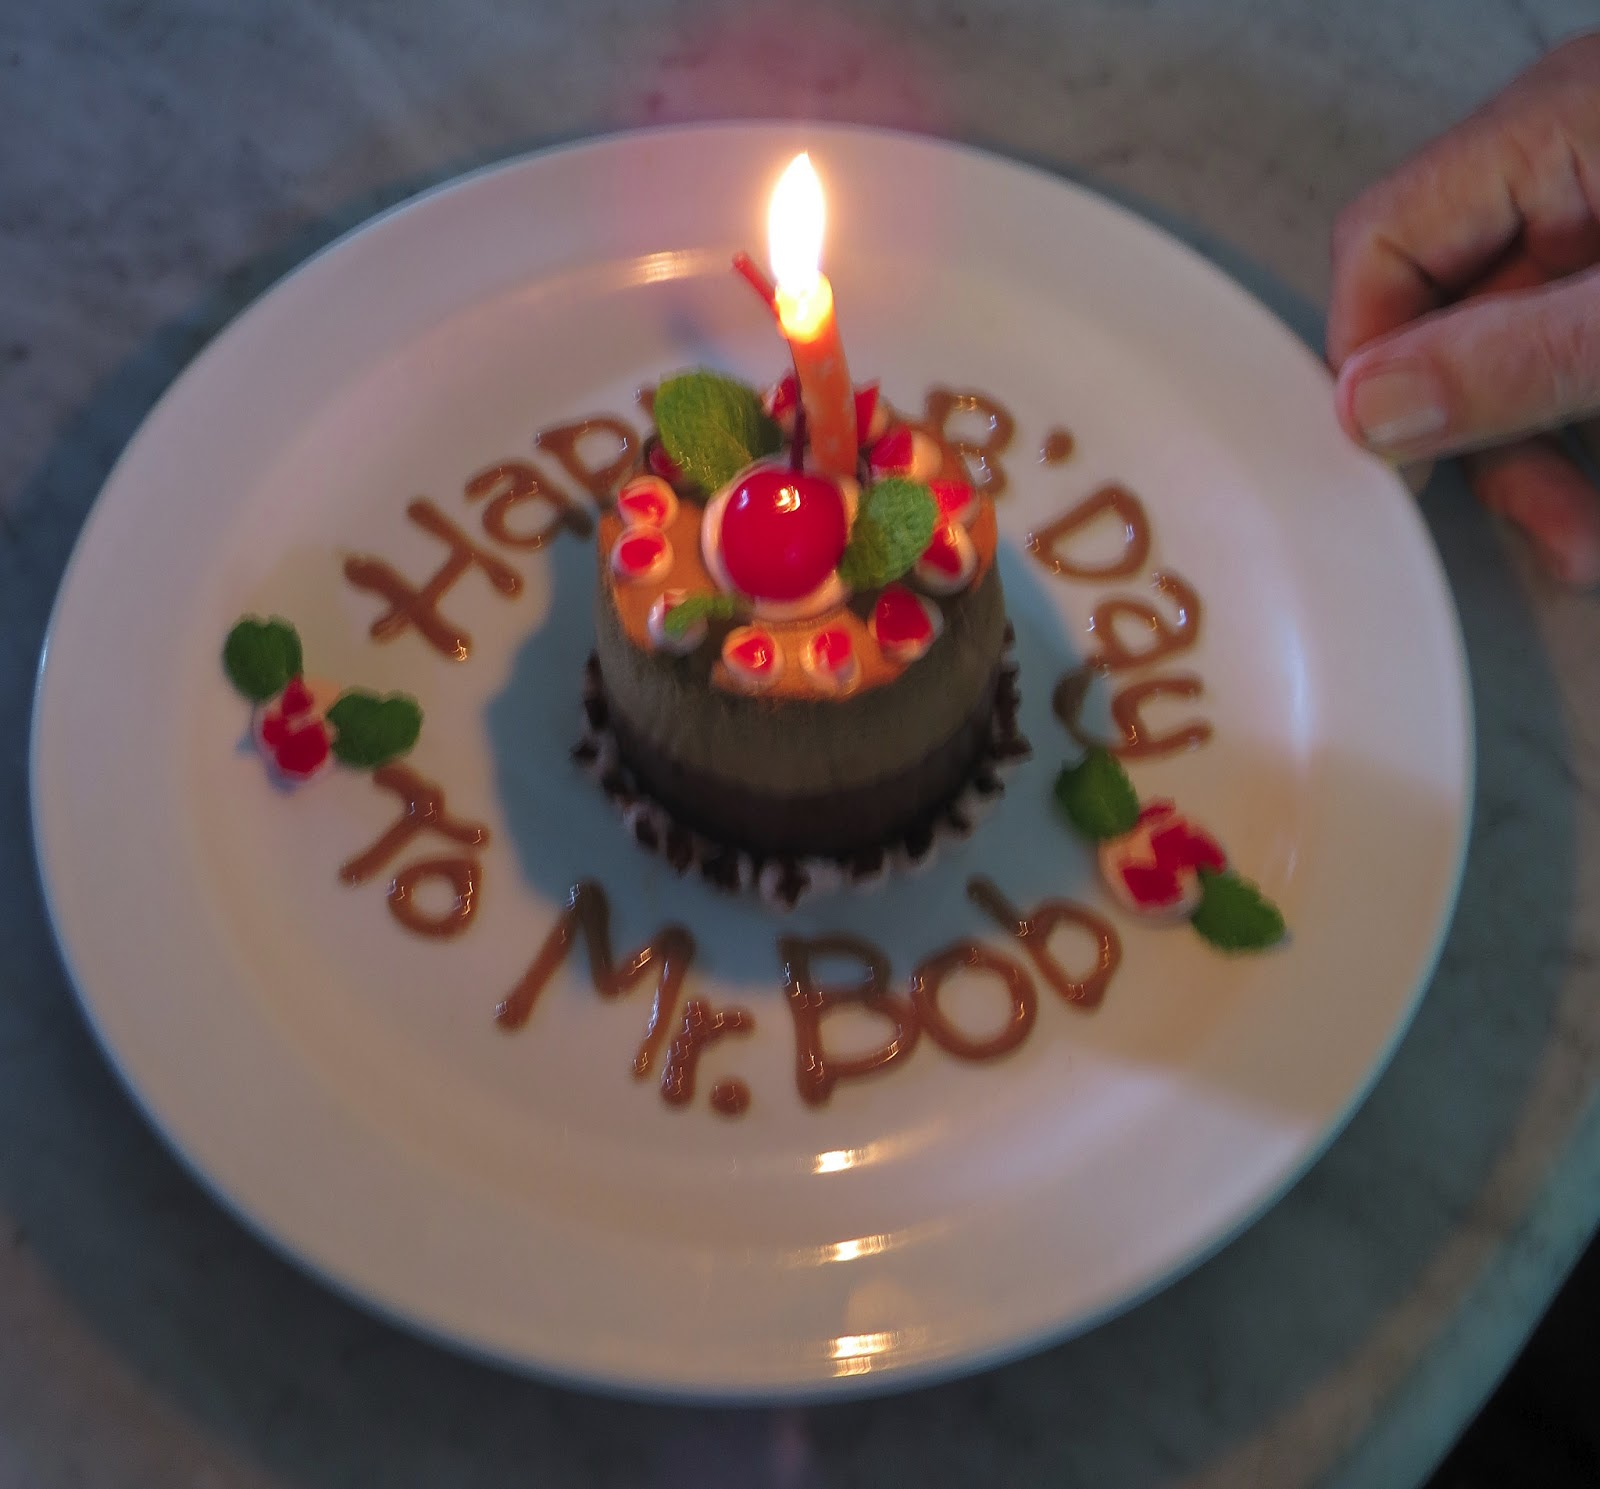 Bob Glowed When The Staff Came Out With A Cake And Candle Singing Happy Birthday Theyd Written Mr In Frosting Around Plate